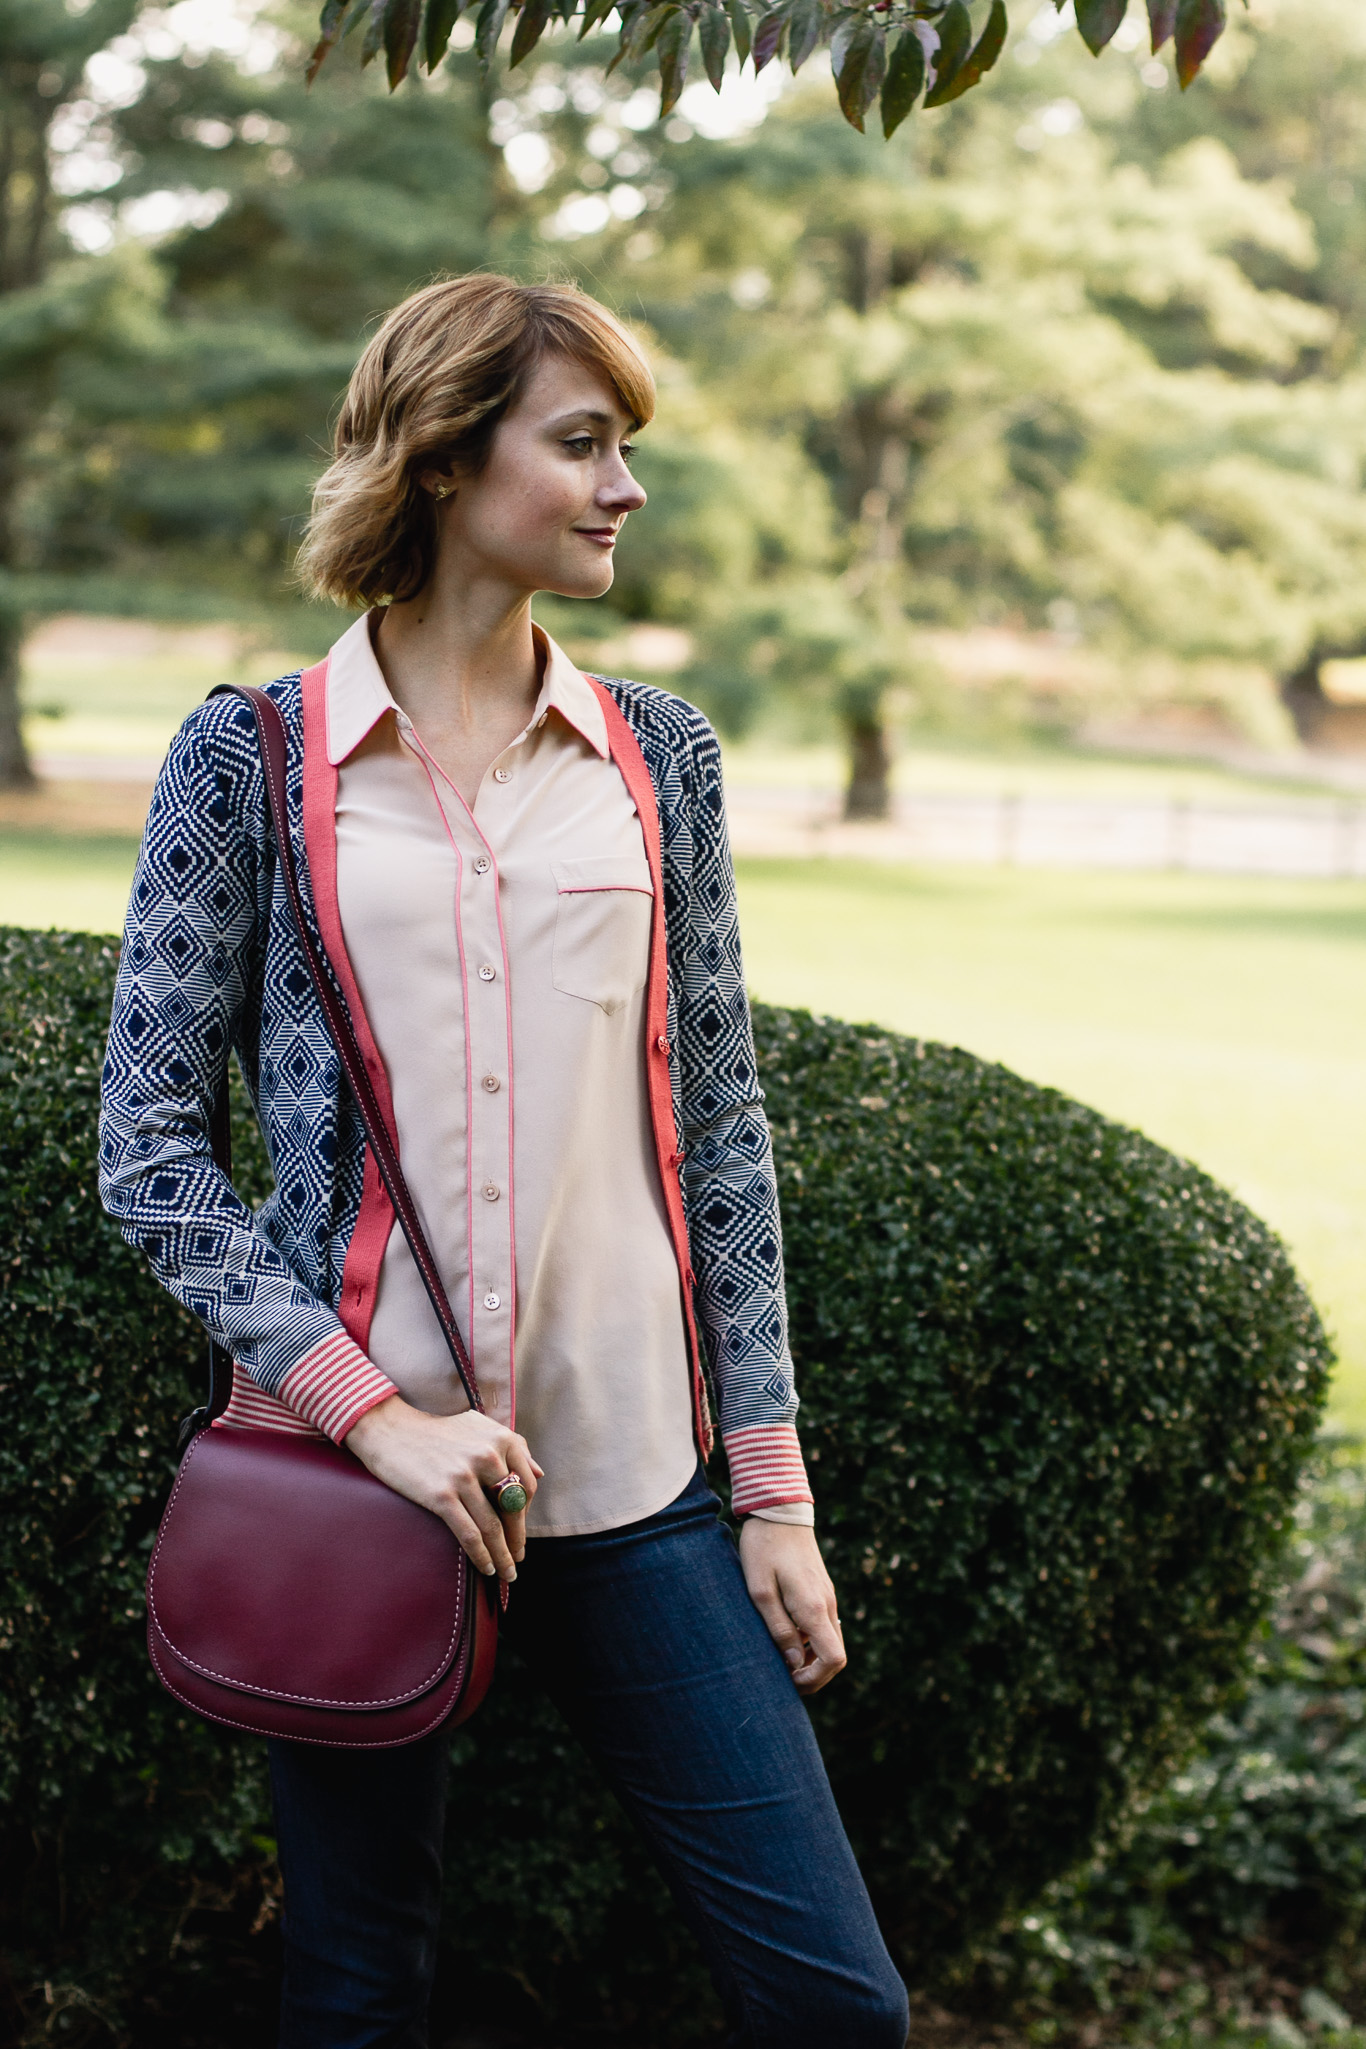 Tory Burch cardigan, Equipment button-down, and Coach bag